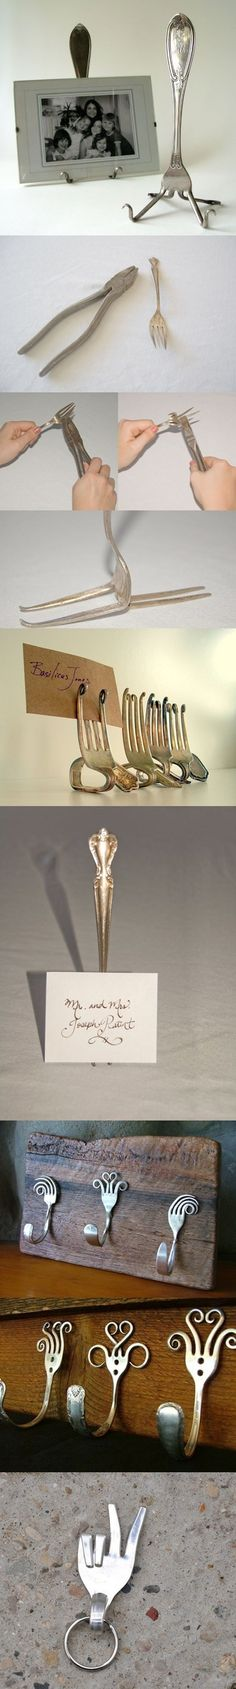 Upcycling Forks